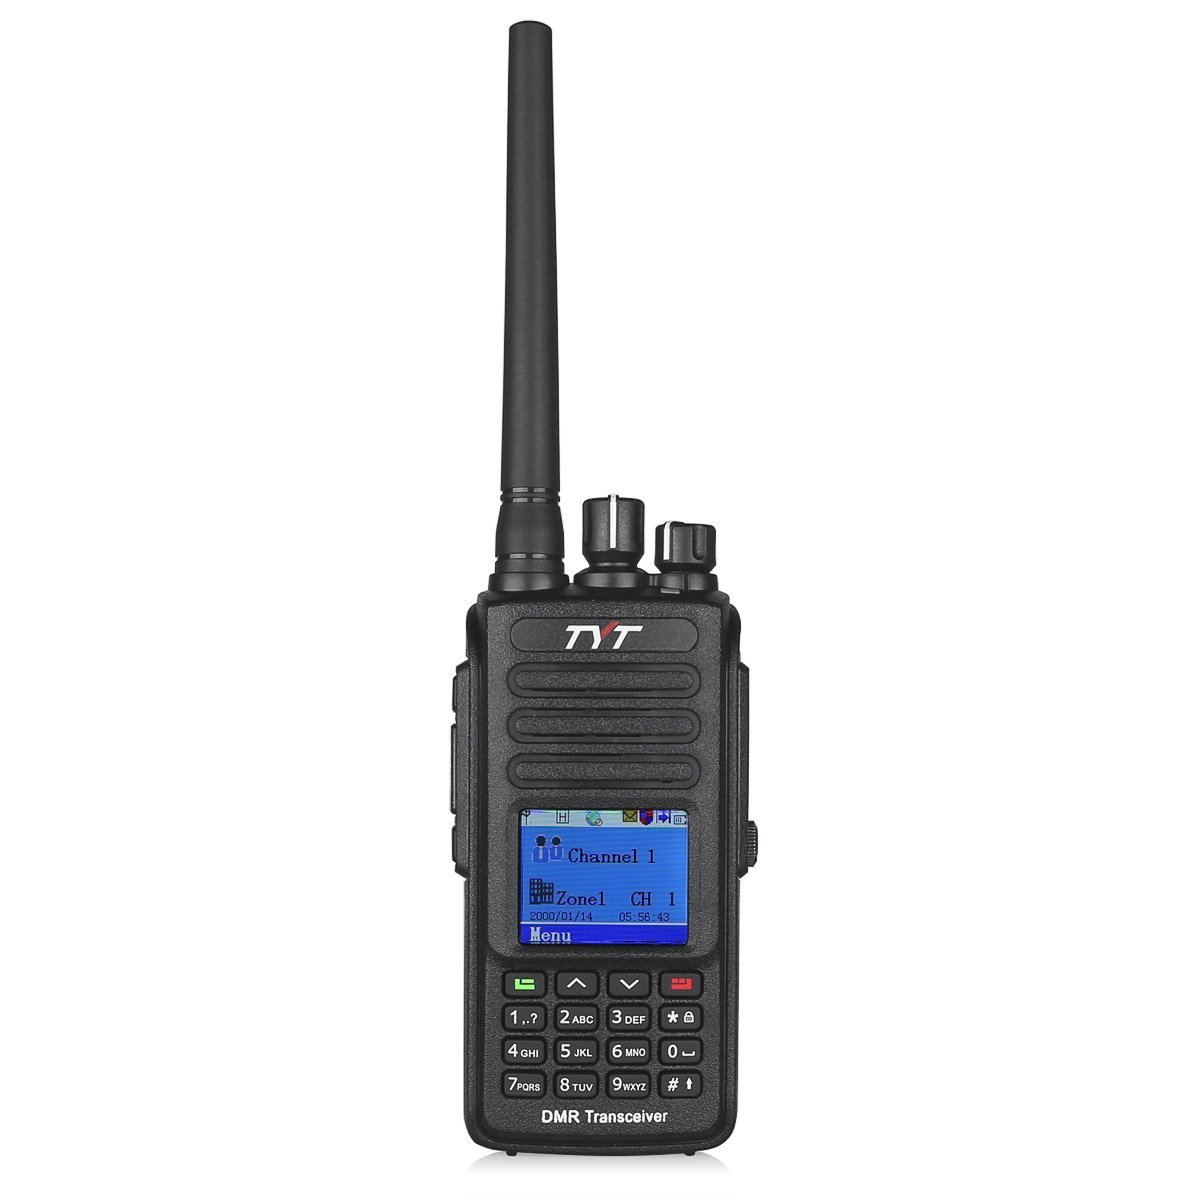 TYT Tytera MD-390 DMR Digital Radio Waterproof Dustproof IP67 Walkie Talkie Transceiver,  Black by TYT